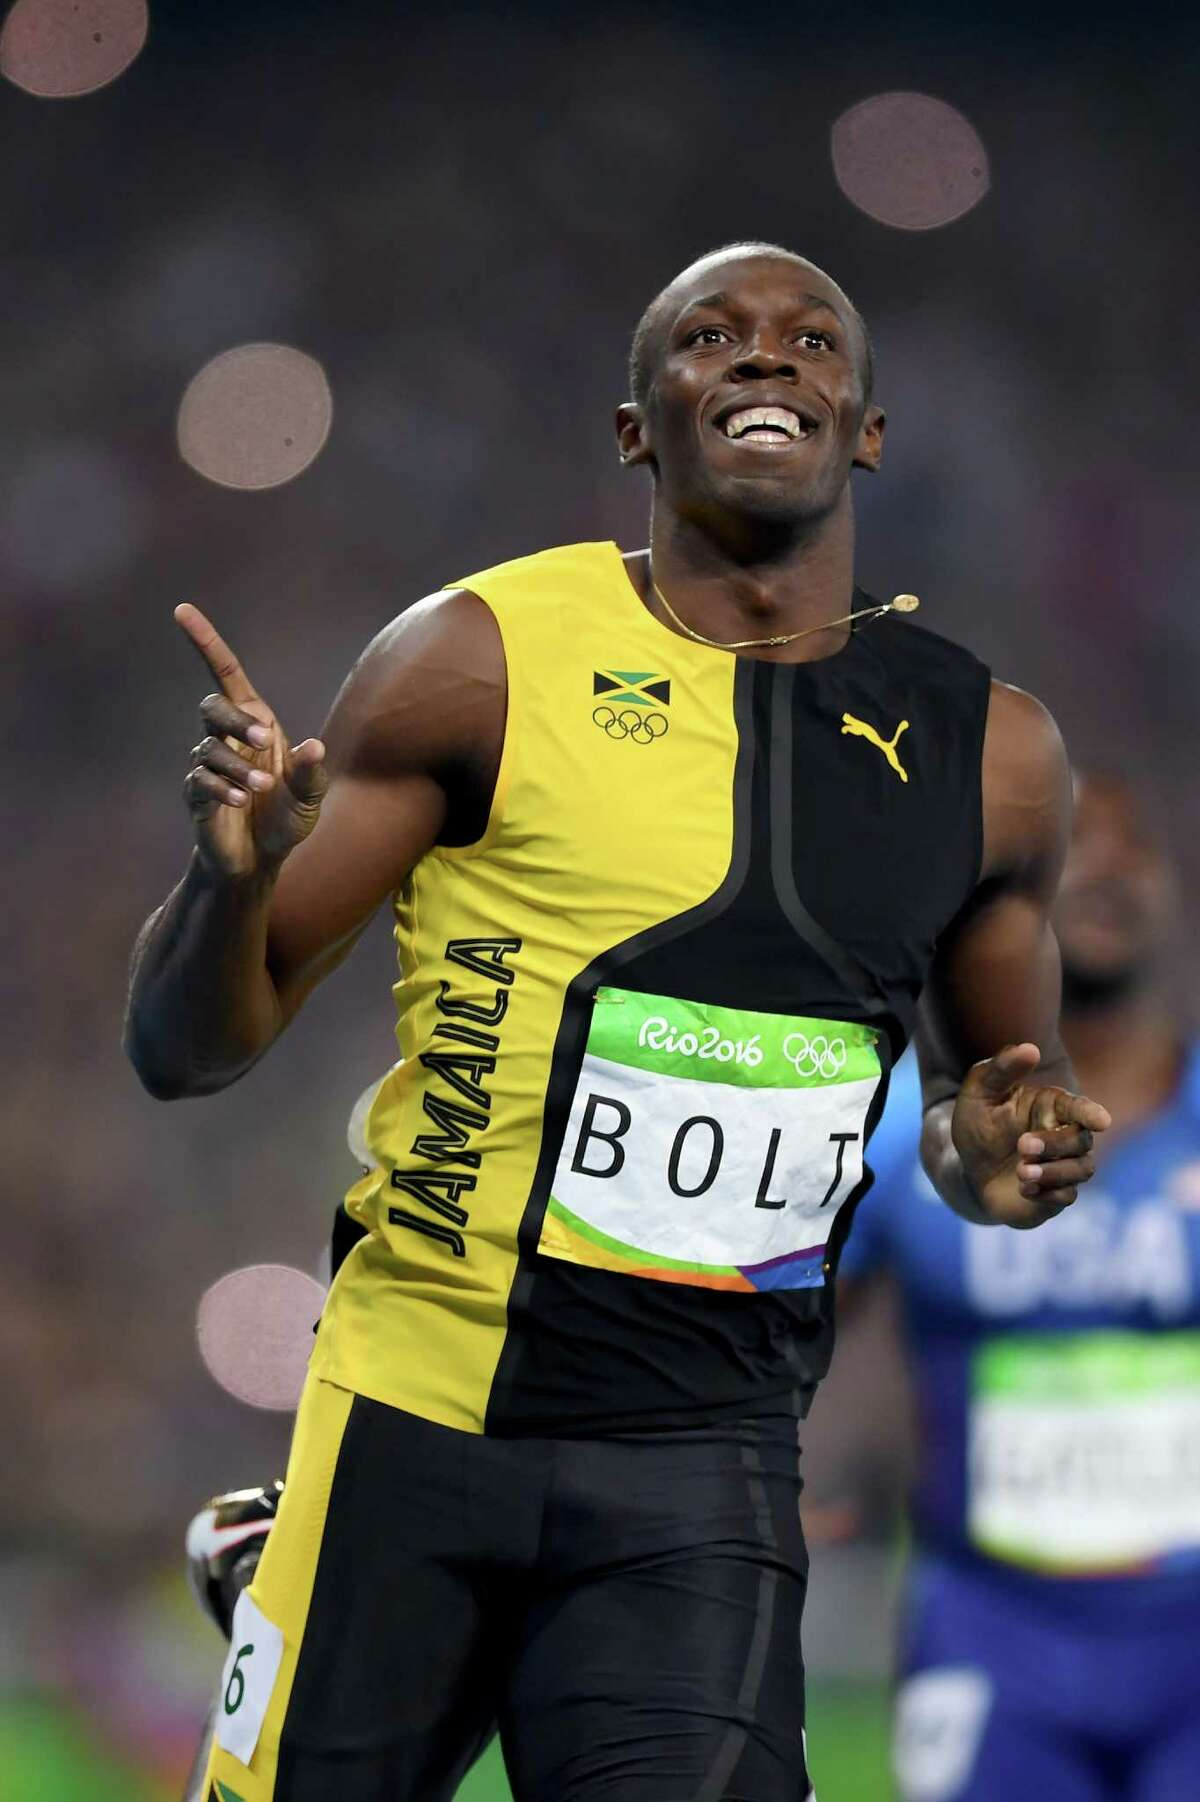 Usain Bolt's gold-medal time of 9.81 seconds was well off his world-record clocking of 9.58 seconds set in 2009.